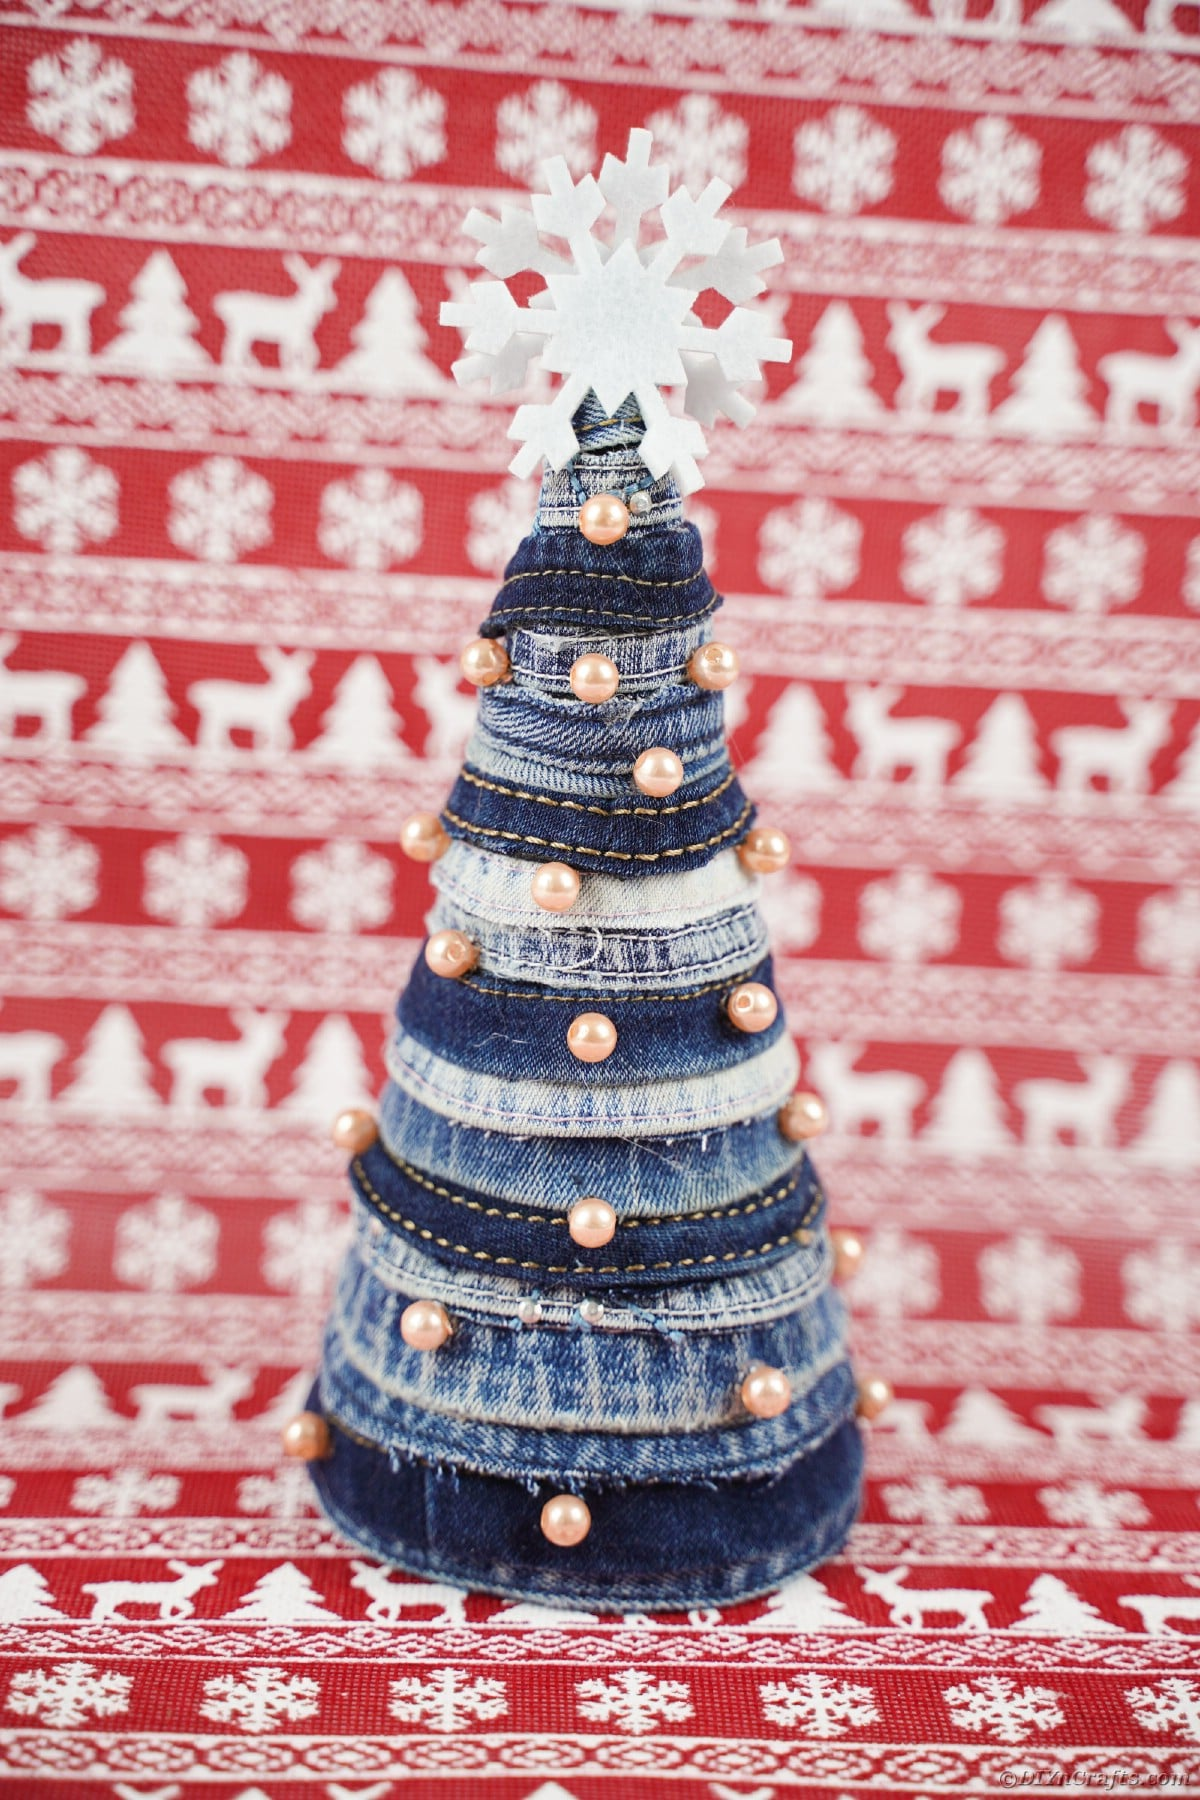 Mini Christmas tree in front of red holiday paper